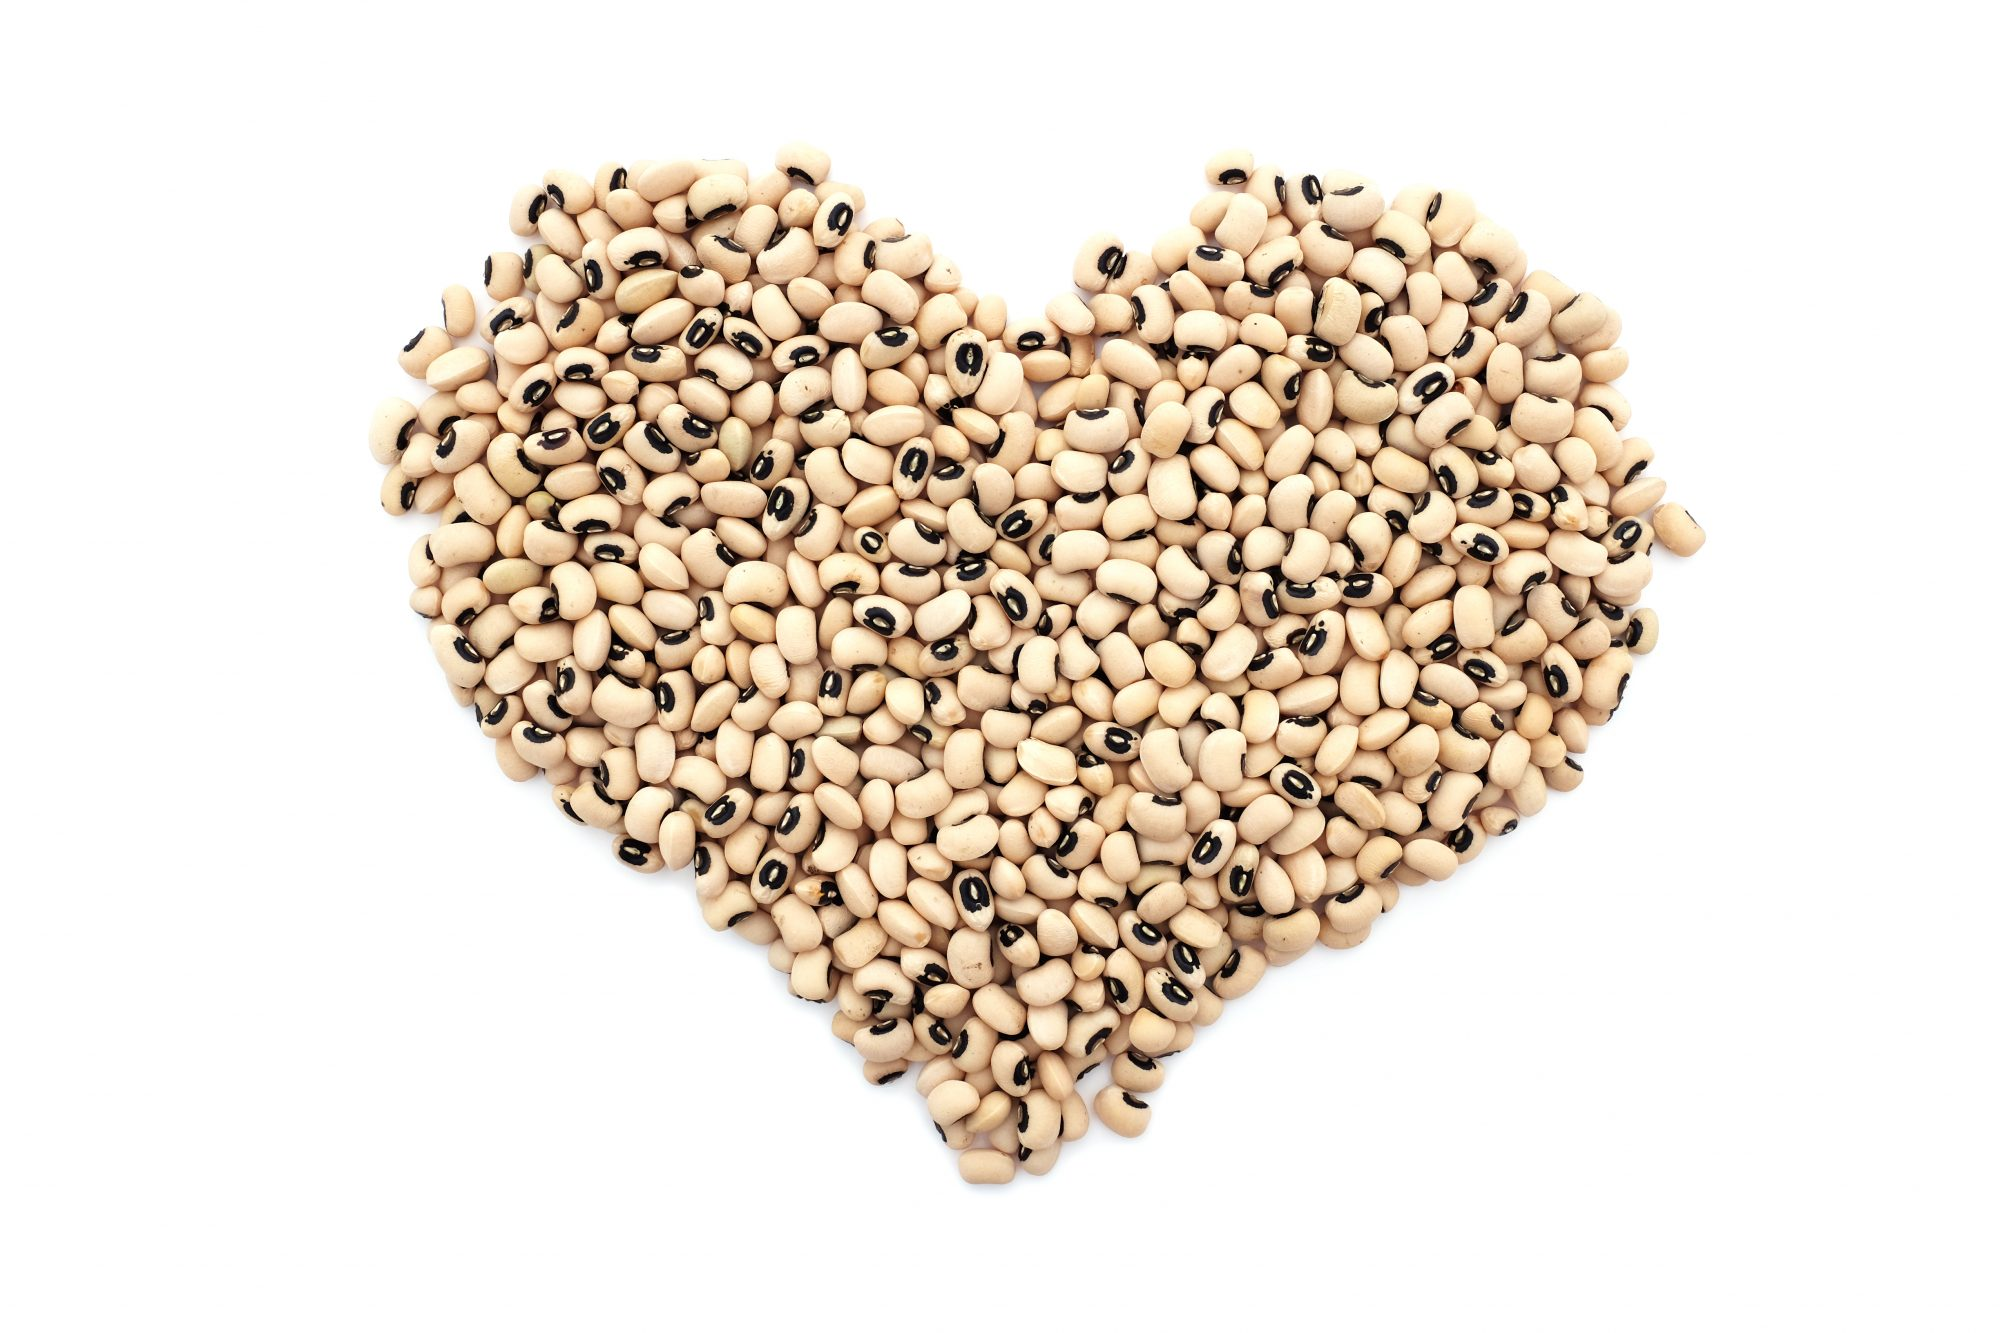 Black eyed beans in a heart shape, isolated on a white background